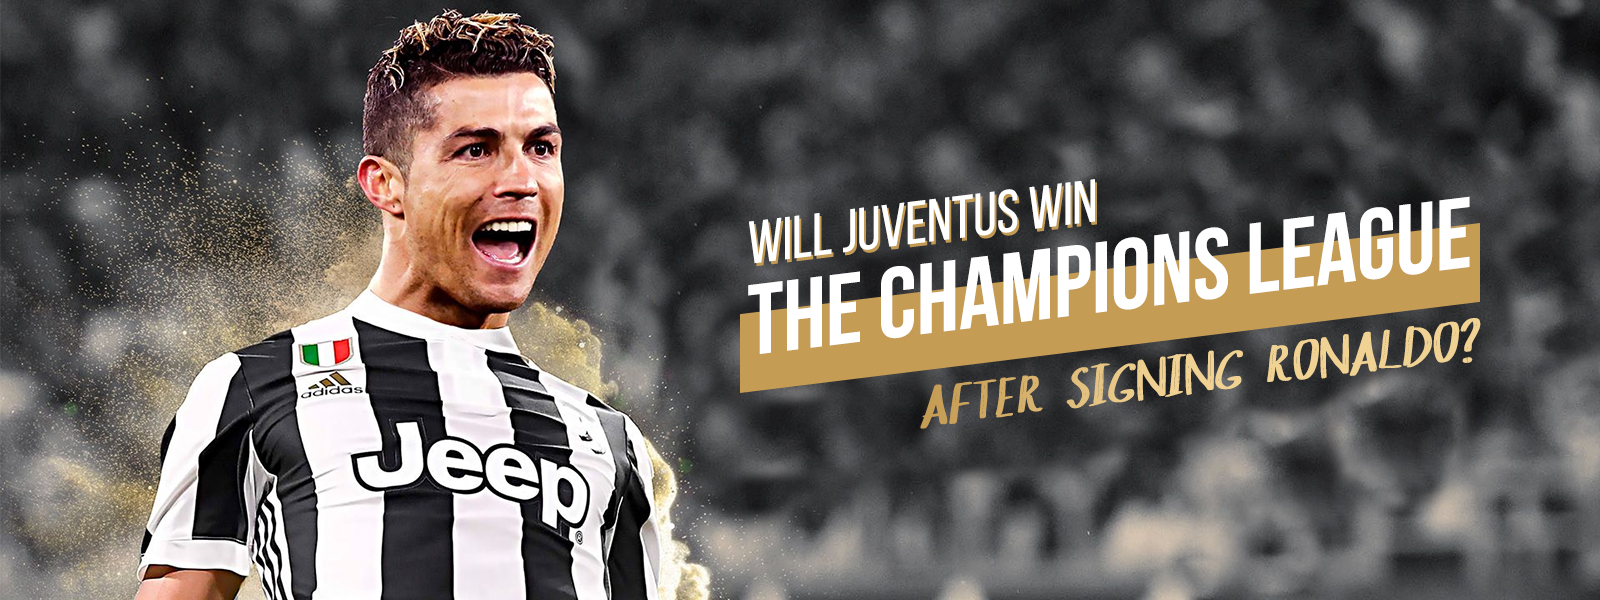 Will Juventus Win The Champions League After Signing Cristiano Ronaldo?